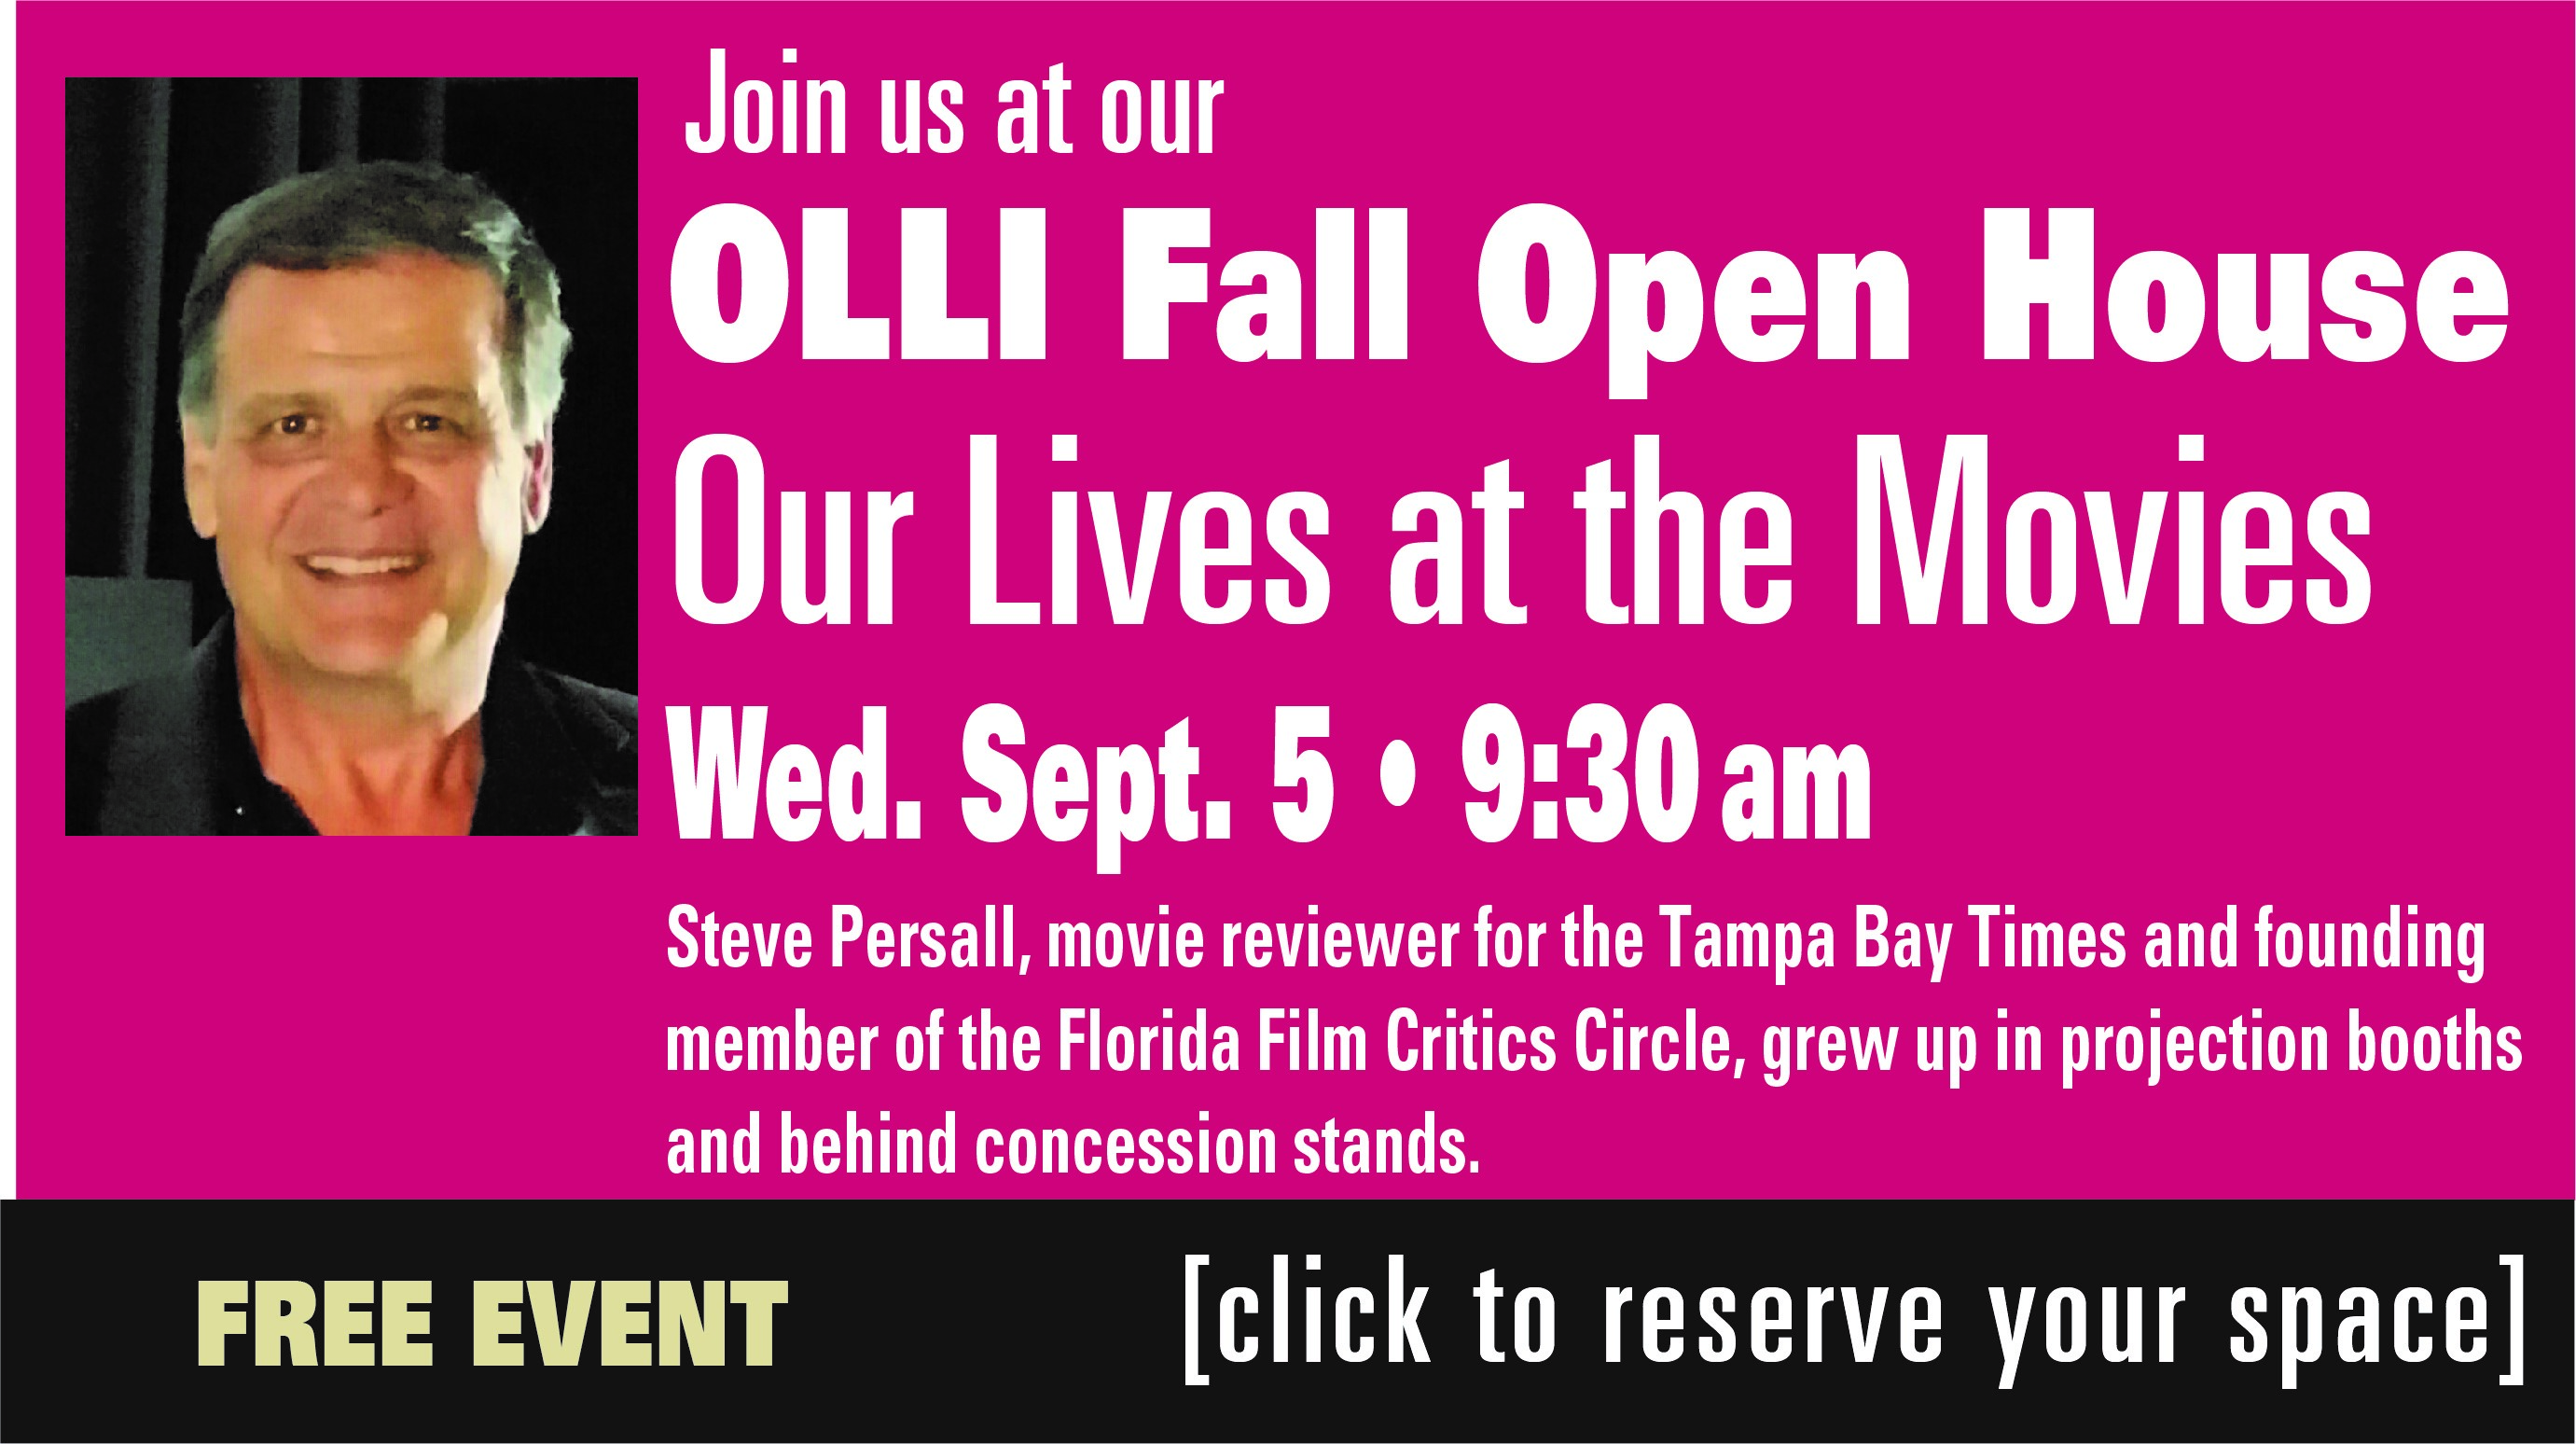 OLLI-USF Open House in Tampa, Sept. 5